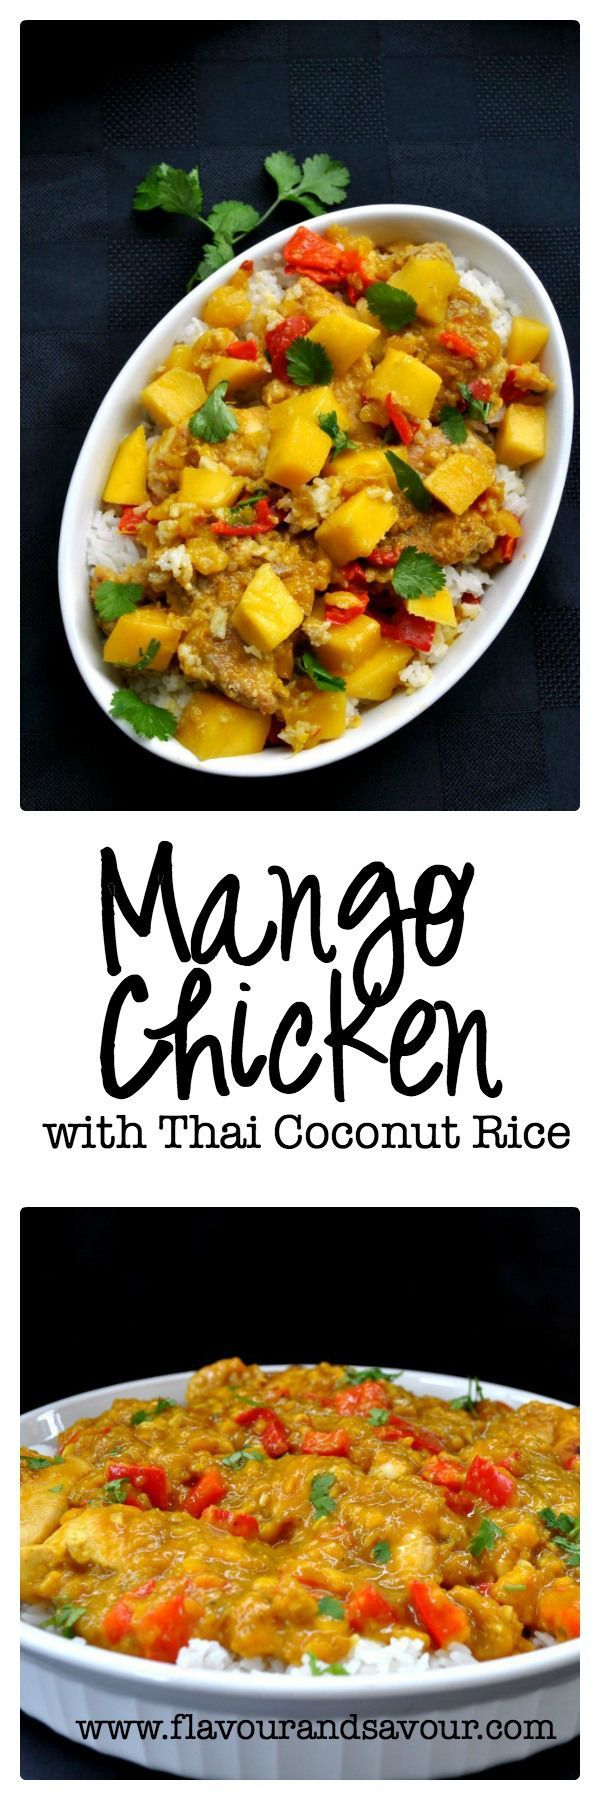 Mango Chicken with Thai Coconut Rice. Everyone loves this recipe! |www.flavourandsavour.com